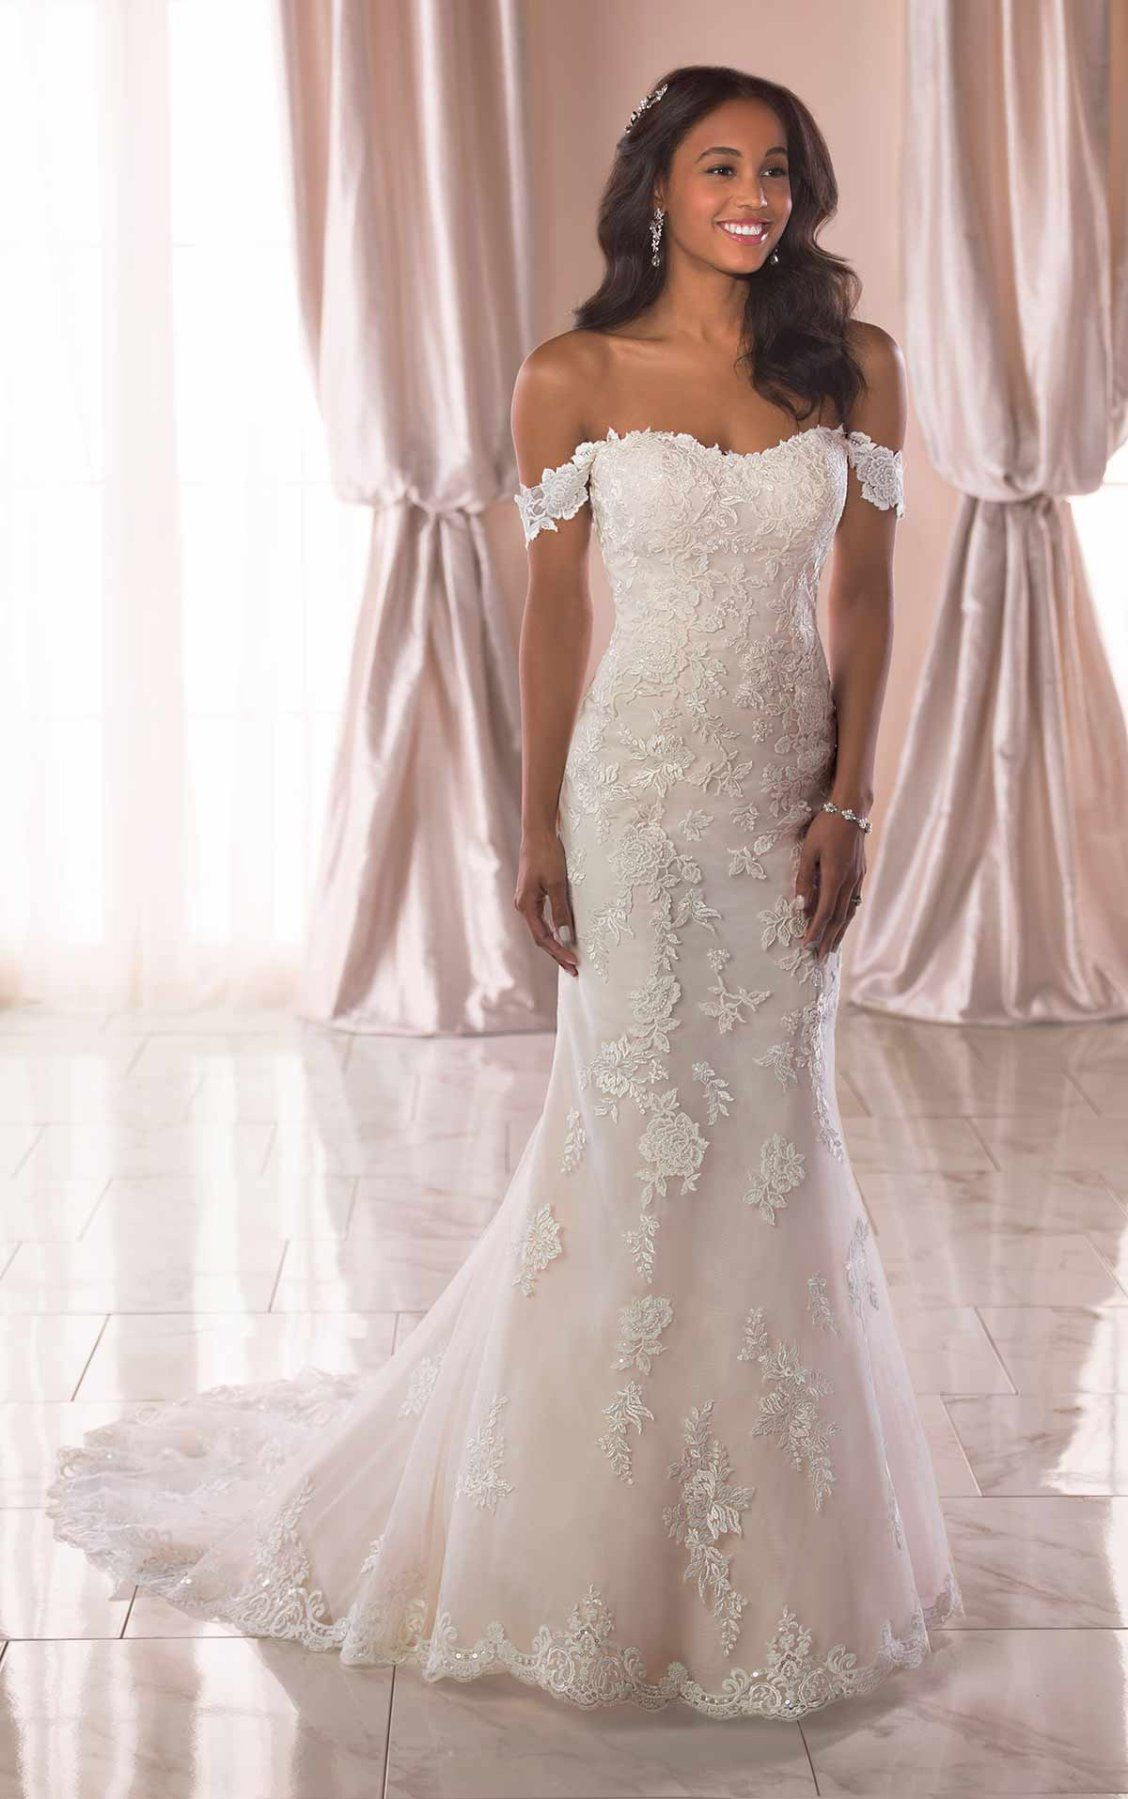 Find Your Dream Dress Affordable Wedding Dresses Designs For Every Size Www Stellayork Com